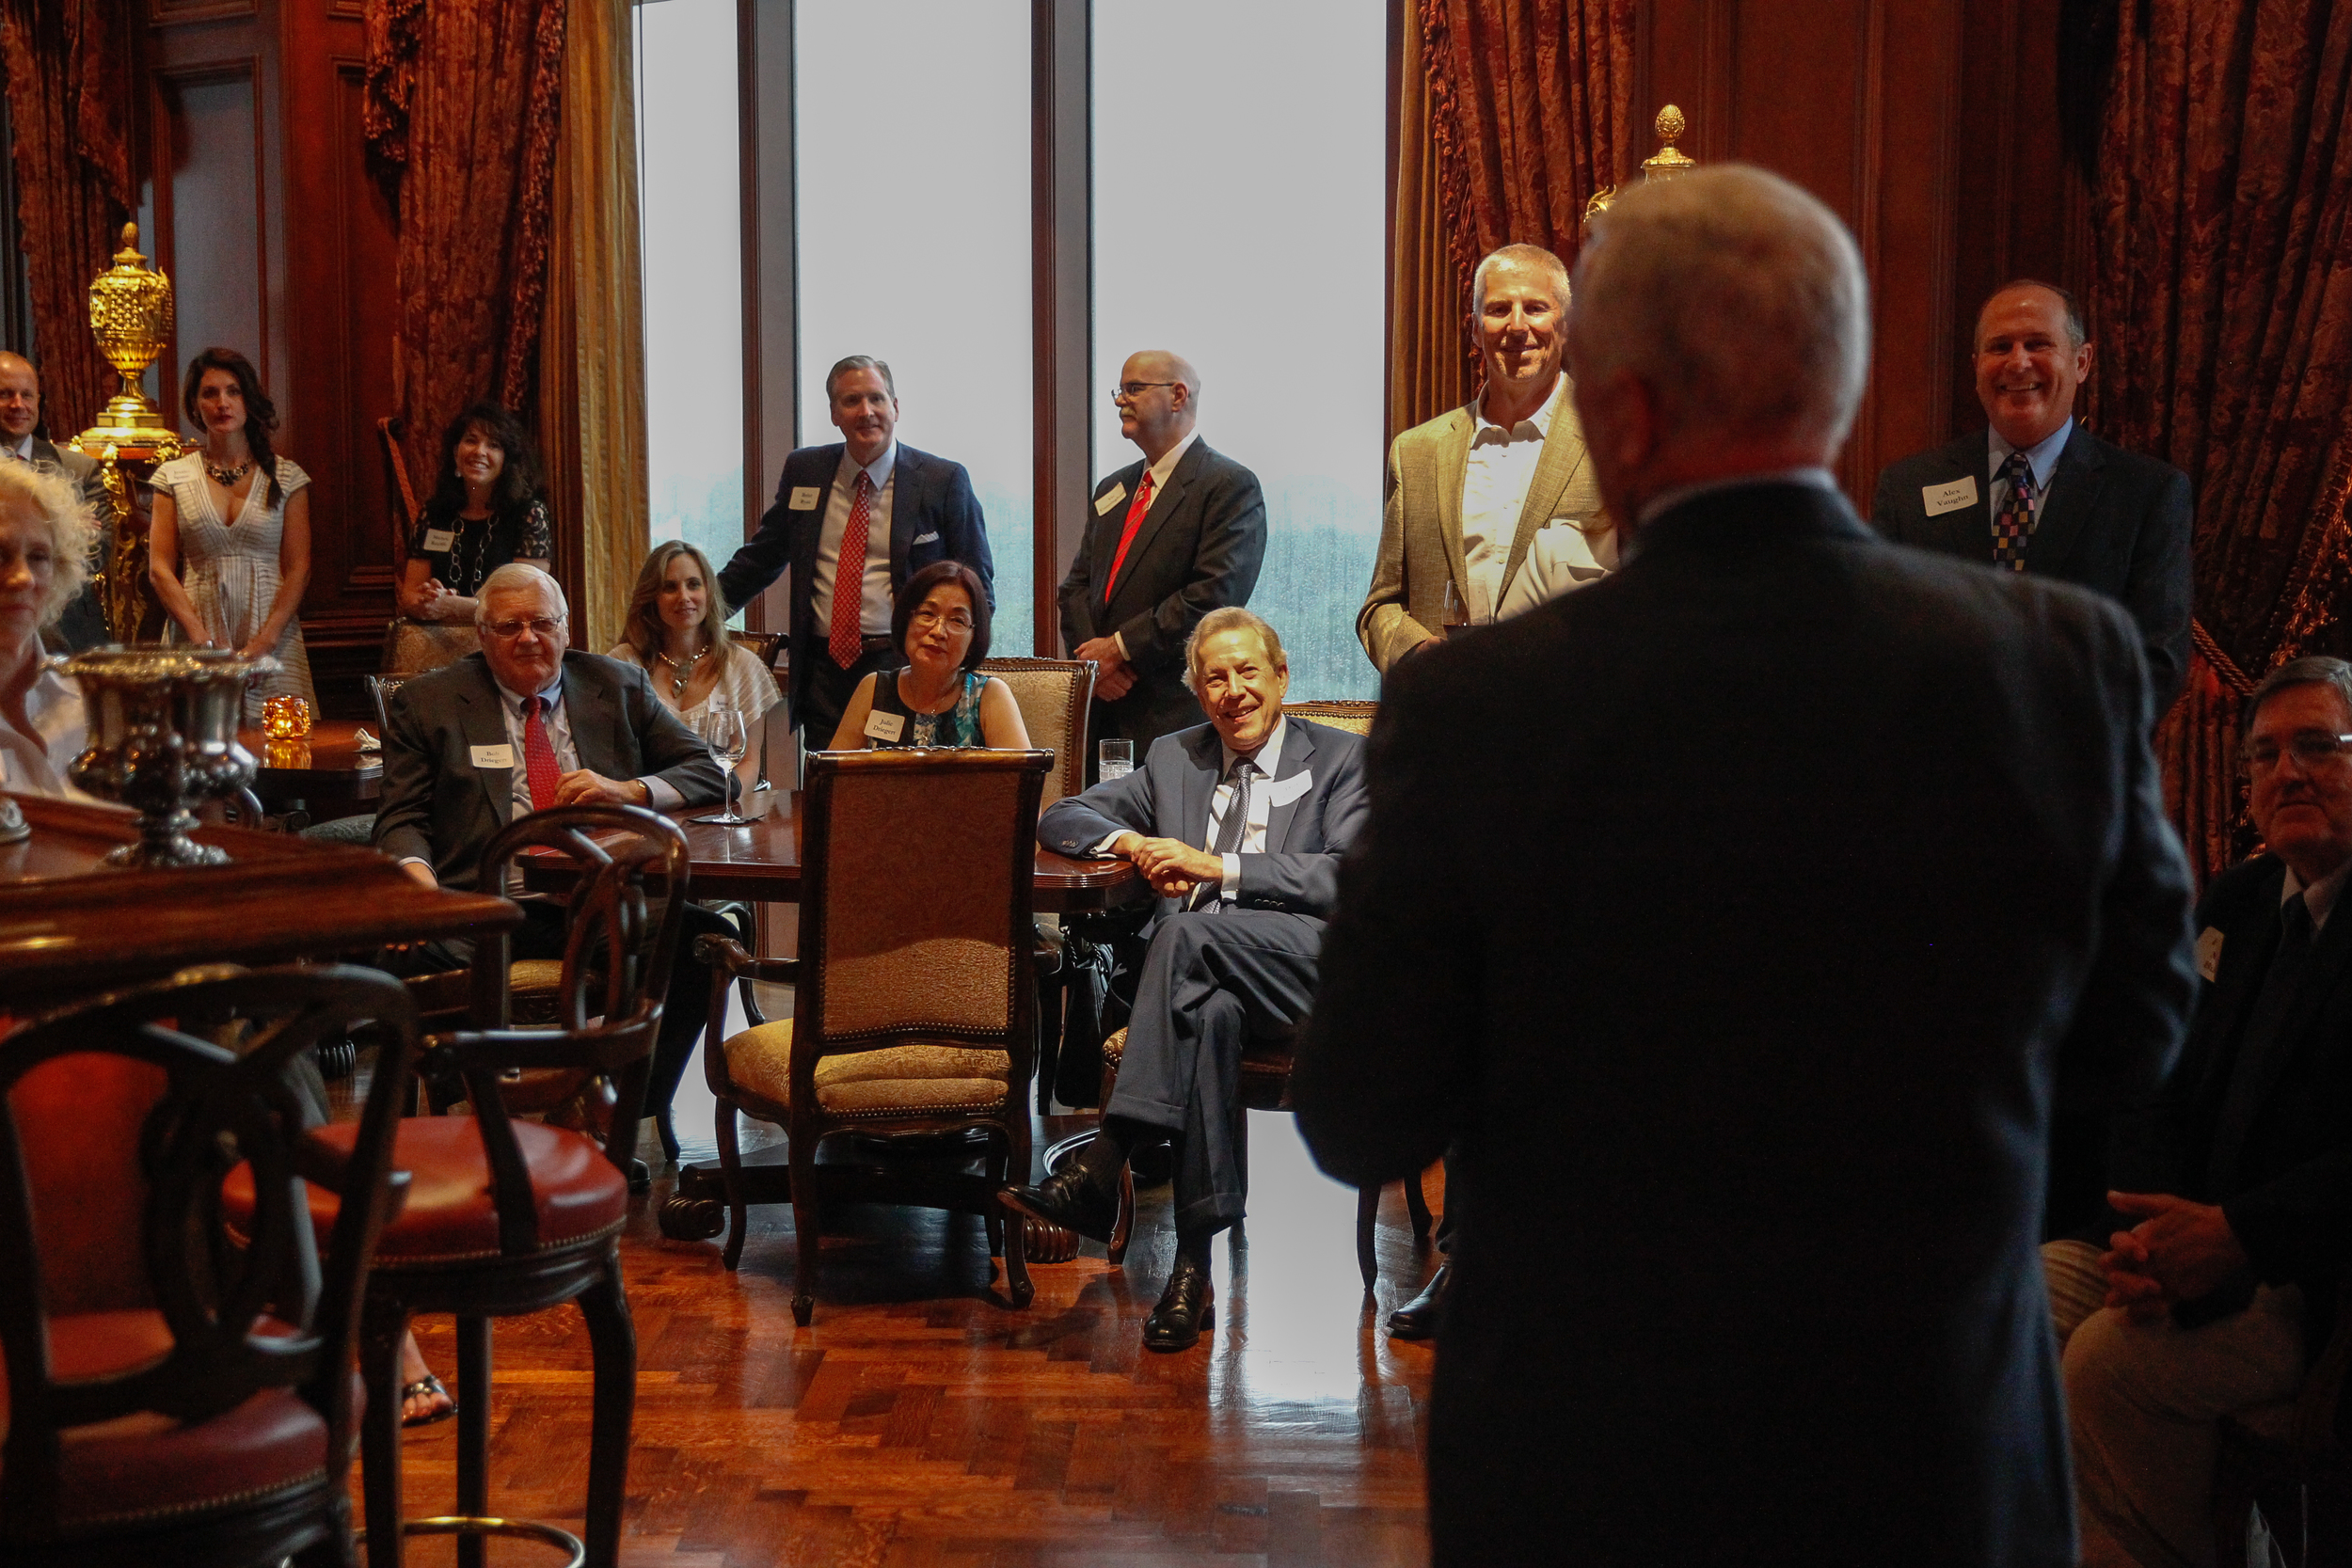 Vice President Mike Pence gives remarks to a crowd of supporters at a Dallas evening reception in 2016.